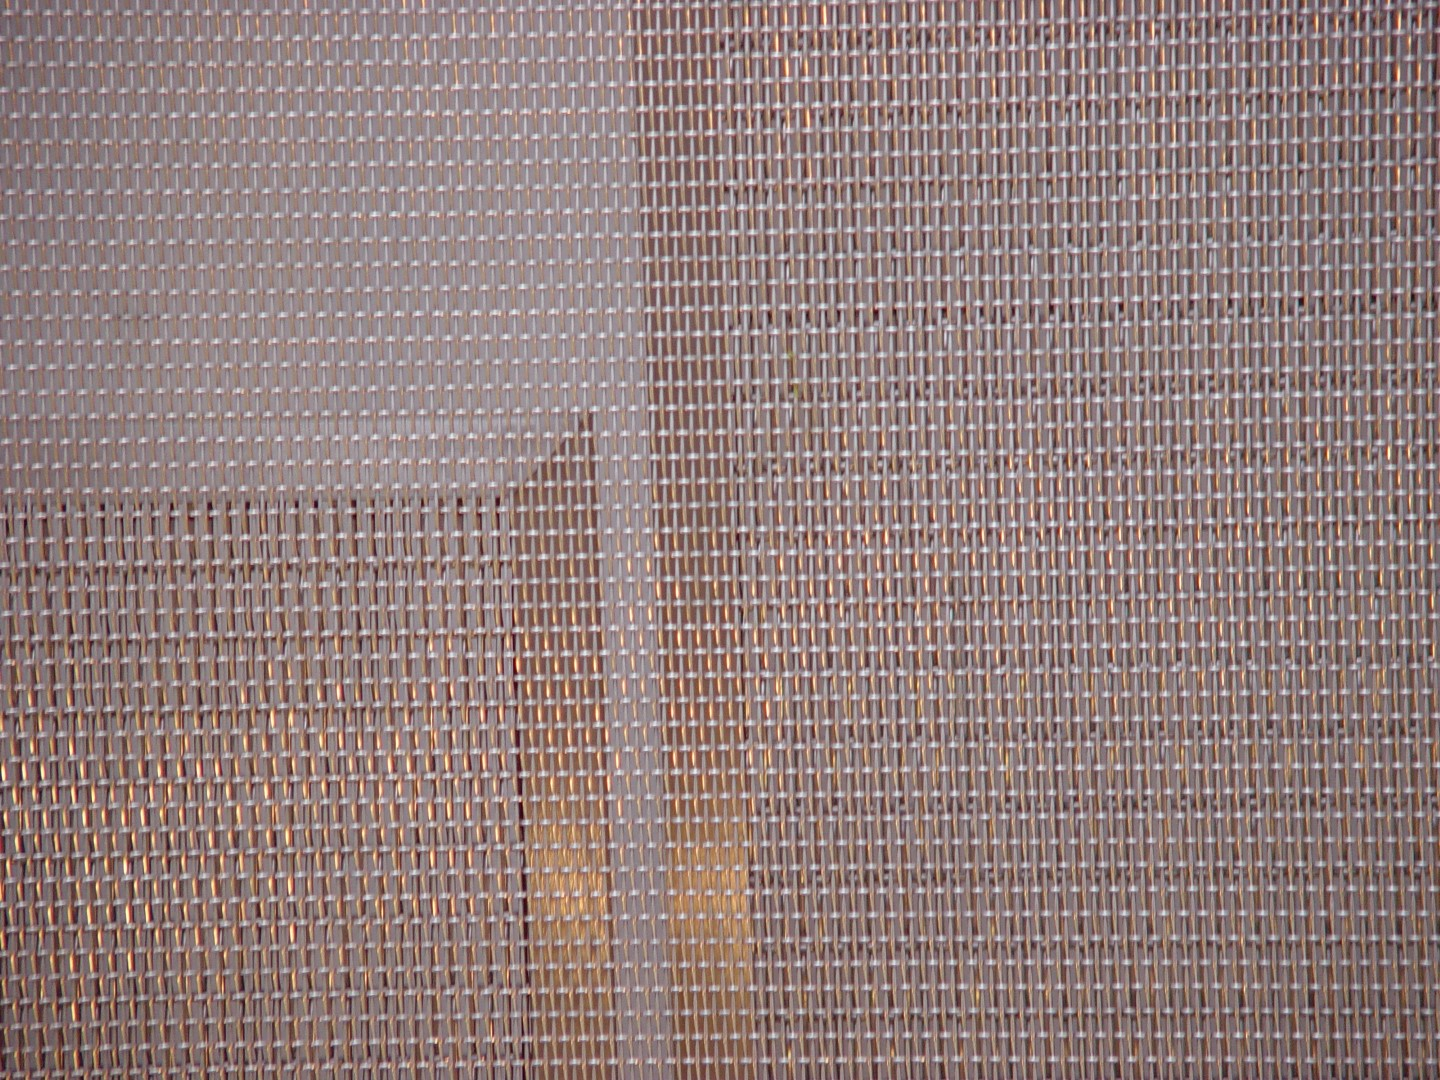 Heavy woven wire mesh is visible through the finer weaves below.